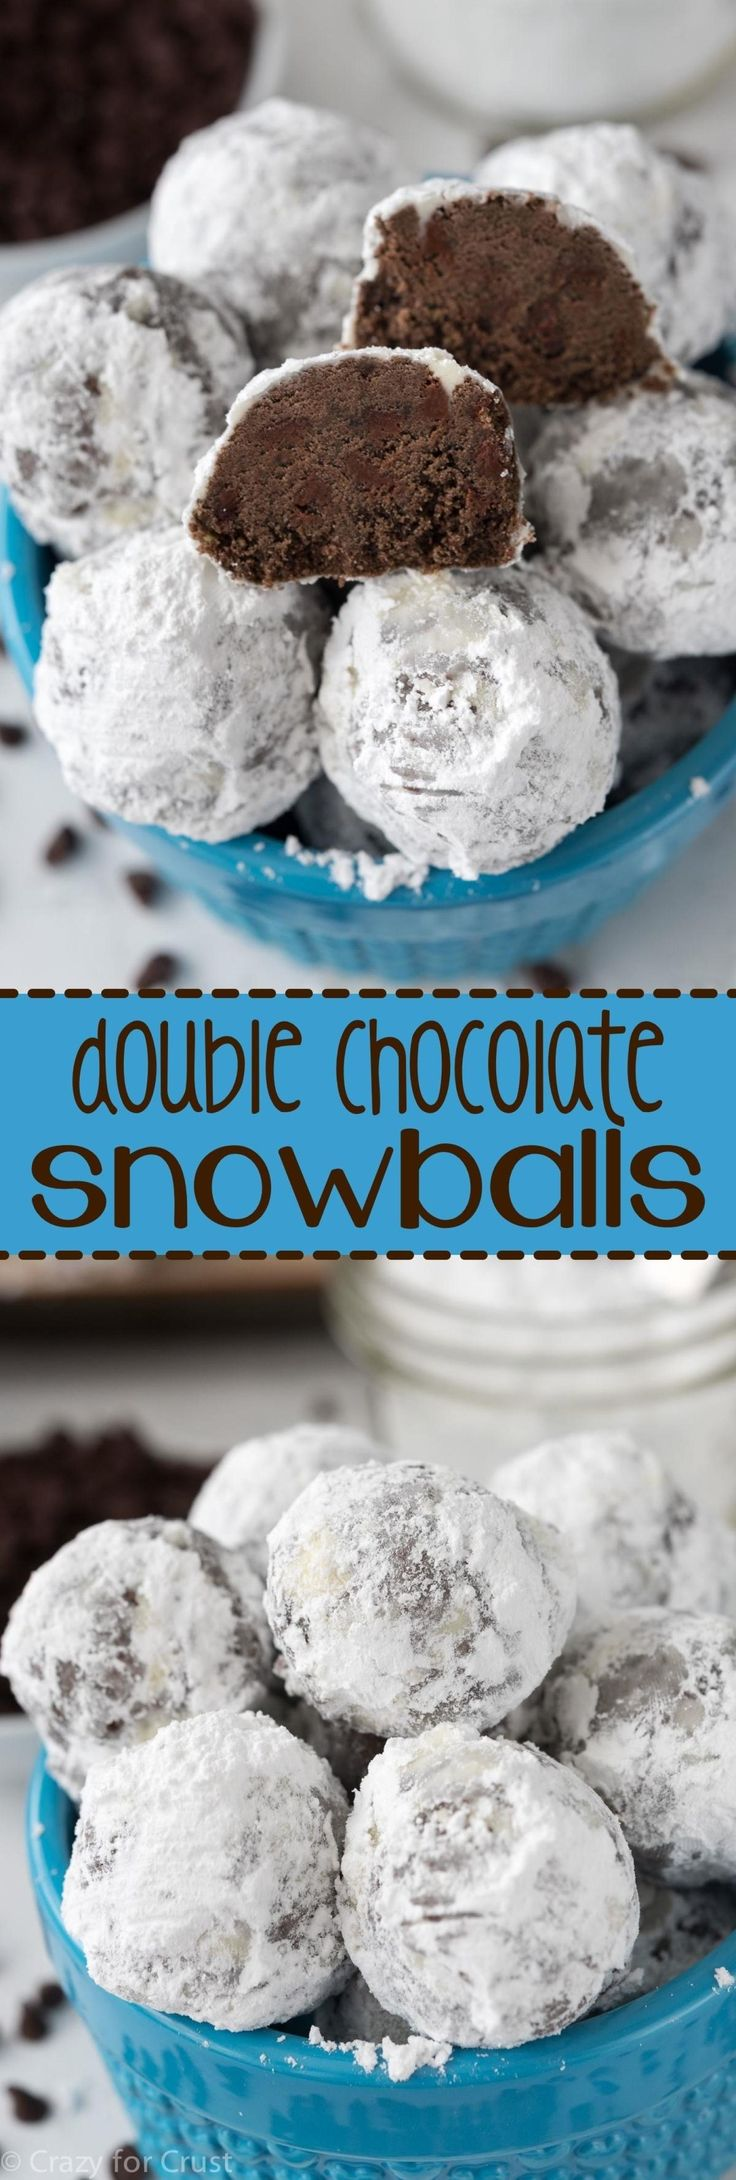 Obtained online.http://www.crazyforcrust.com/2015/11/double-chocolate-snowball-cookies/